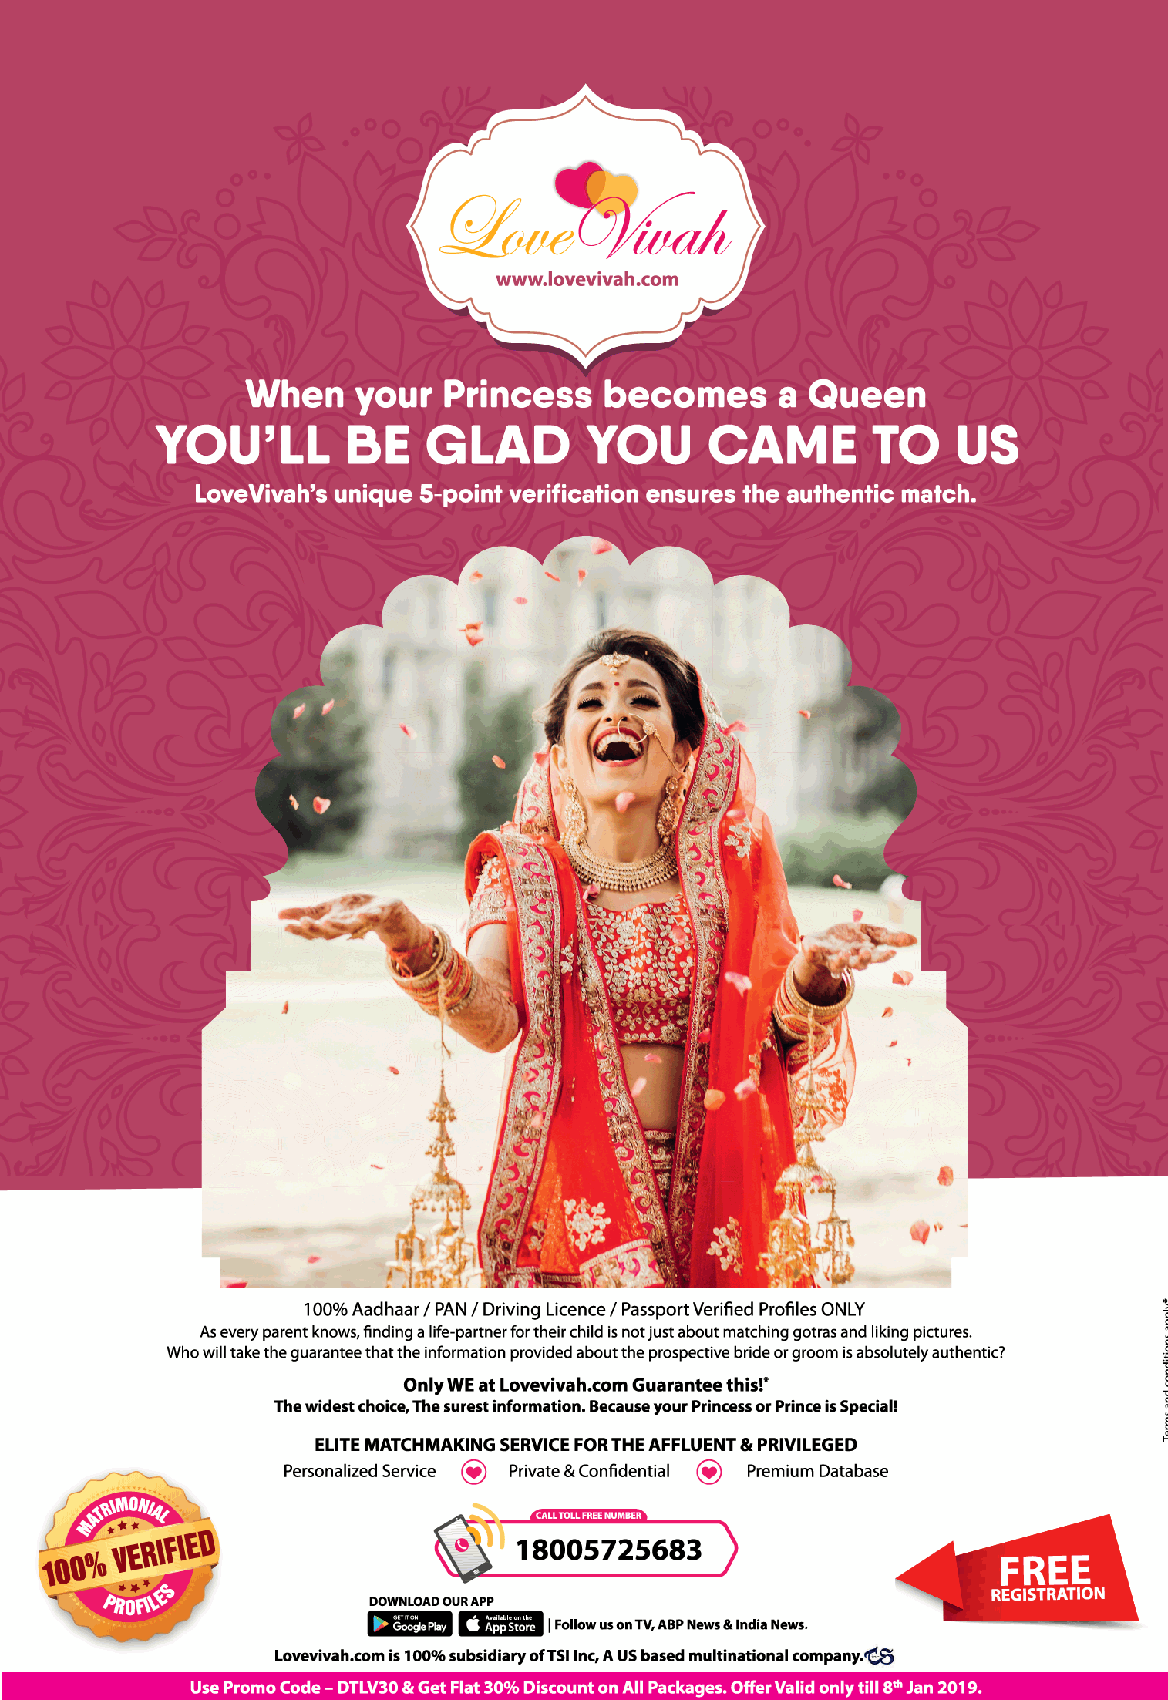 Matches Made In Heaven Meet at LoveVivah - Wedding Affair